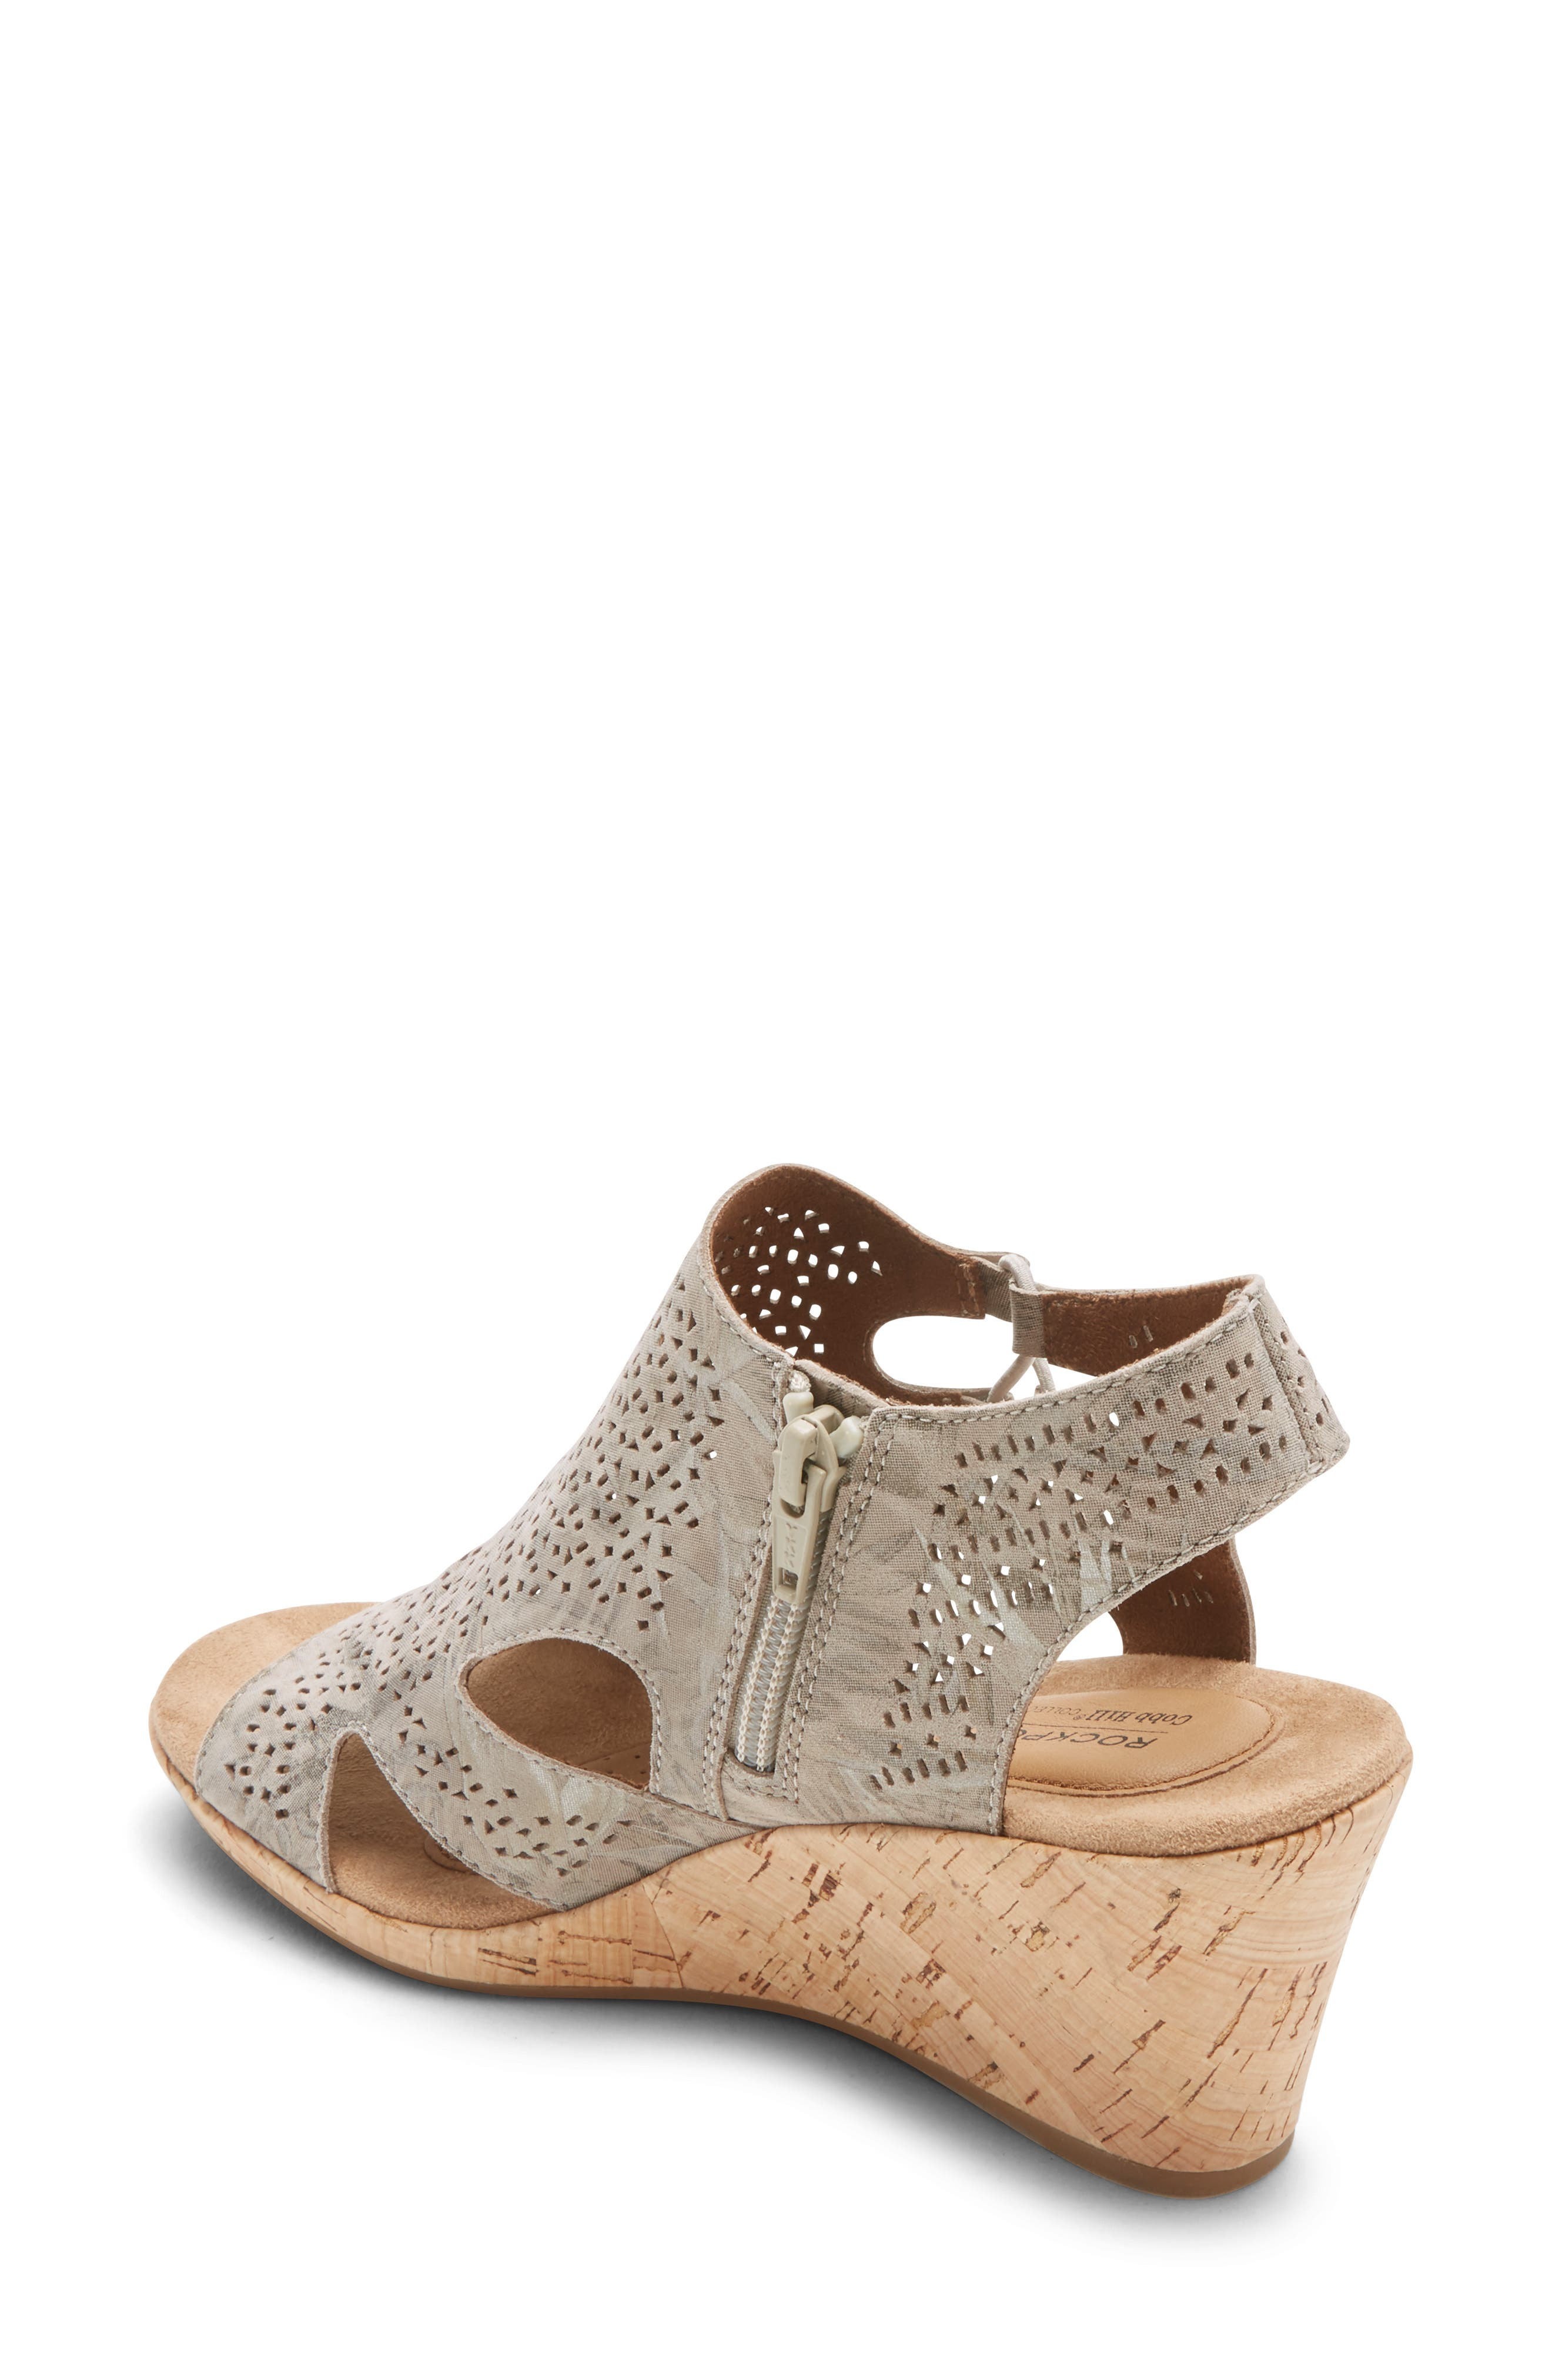 ROCKPORT COBB HILL, Janna Perforated Wedge Sandal, Alternate thumbnail 2, color, FLORAL METALLIC LEATHER